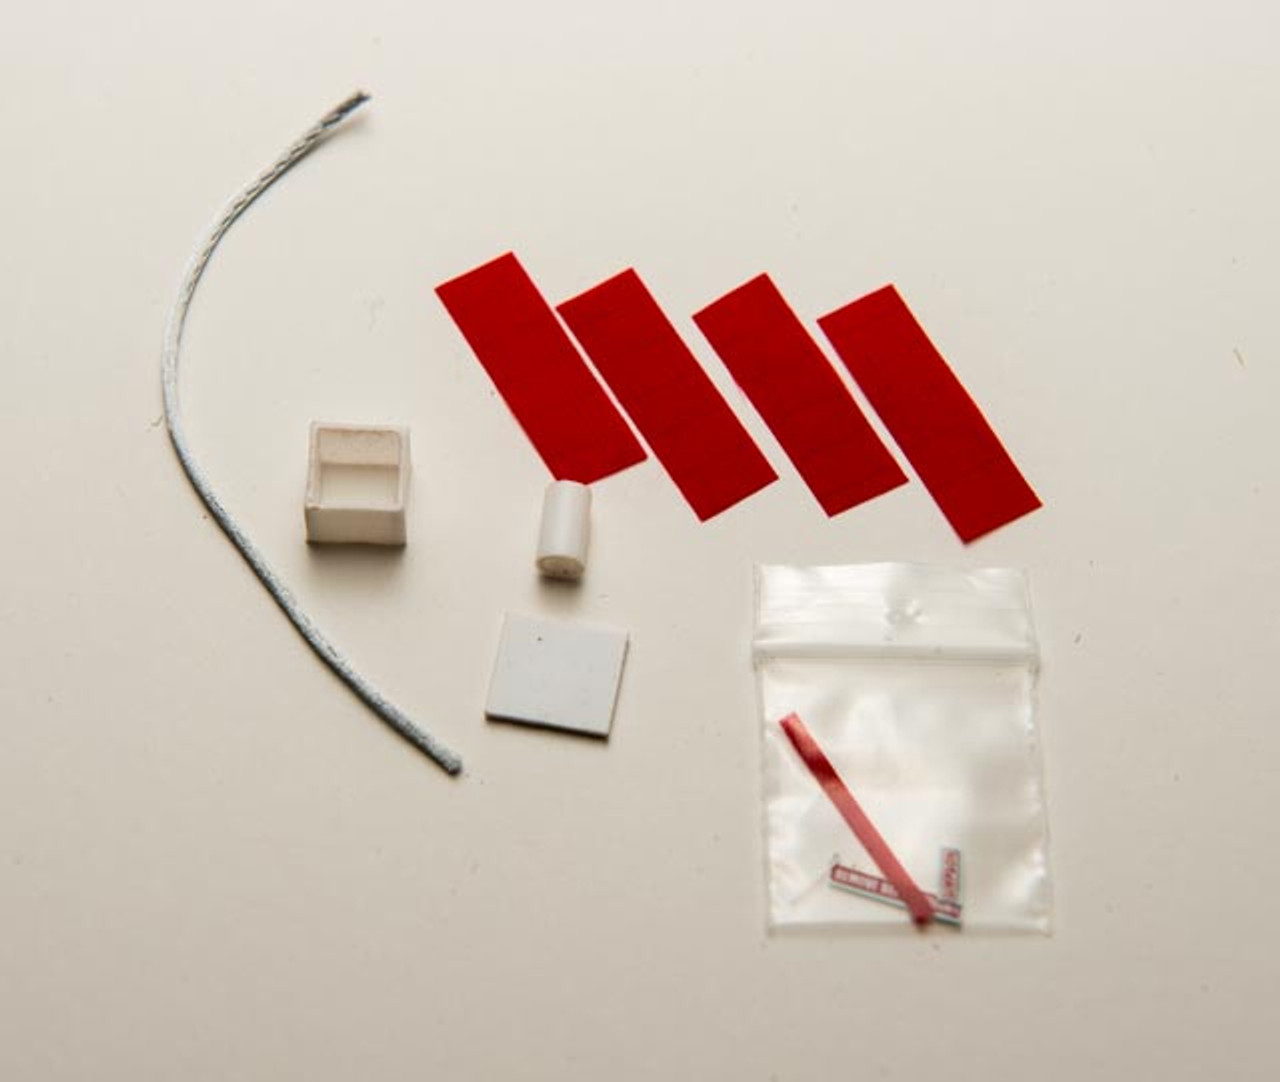 Parts included (red parachute shown)